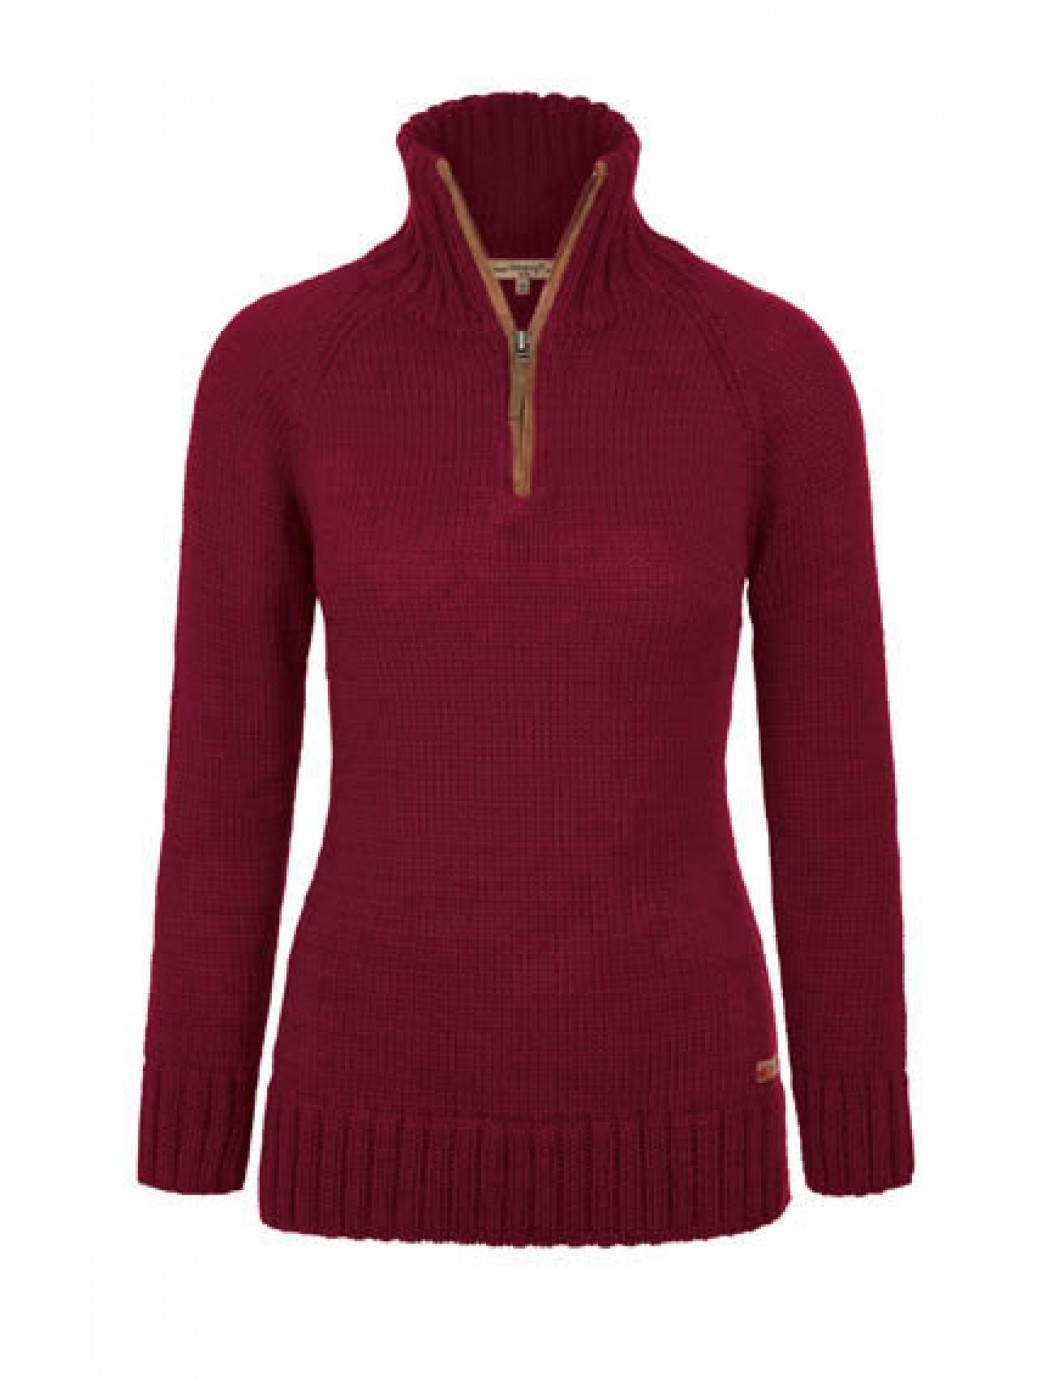 kirwan-sweater-cardinal-red-dubarry-1 1